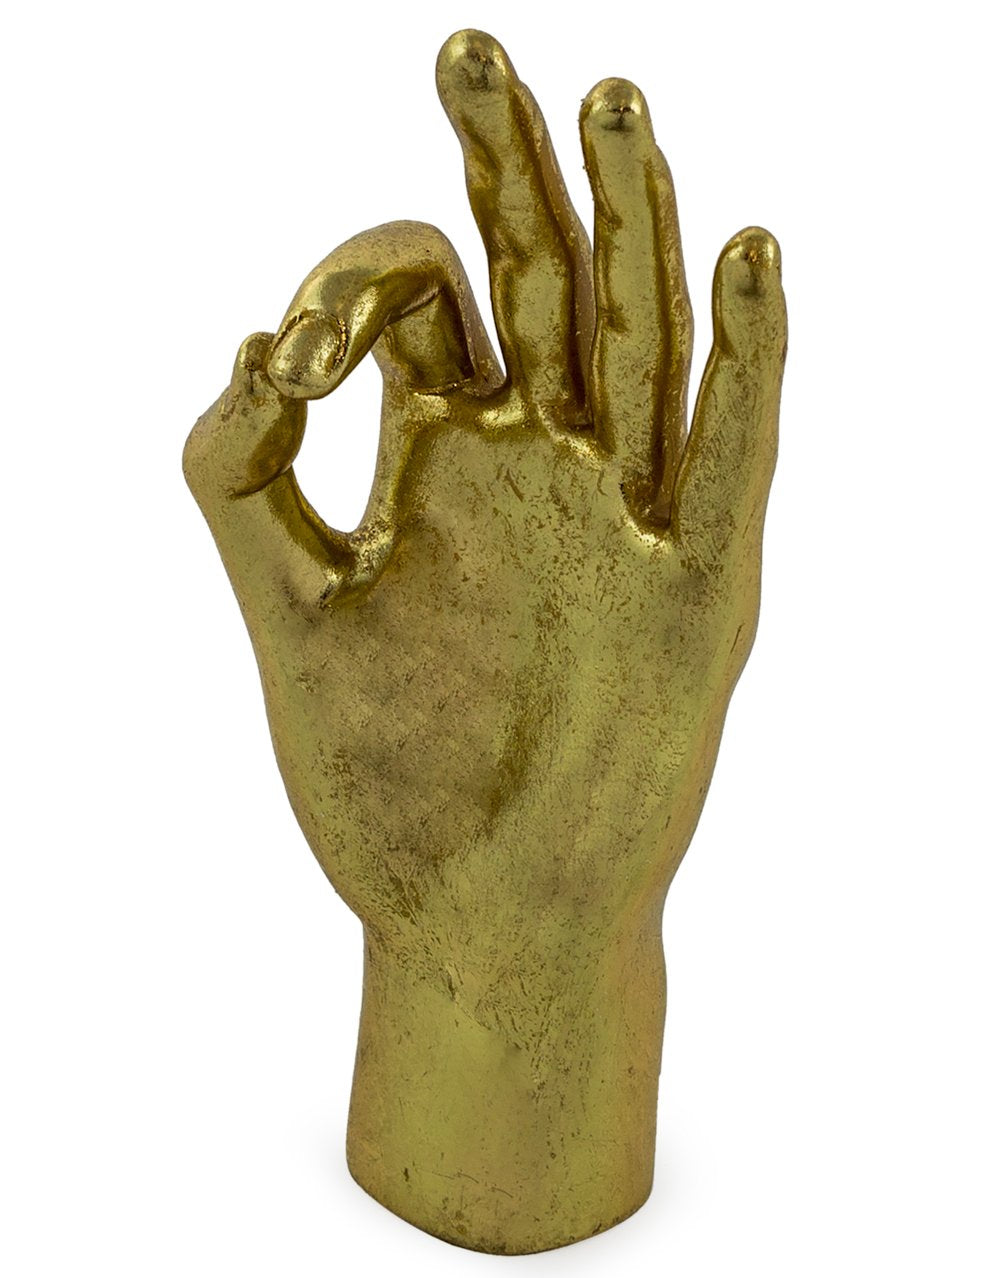 gold ok hand giving us life, talisman to make us feel ok, 15cm tall, resin gold leaf, ok rock on hand gesture symbol